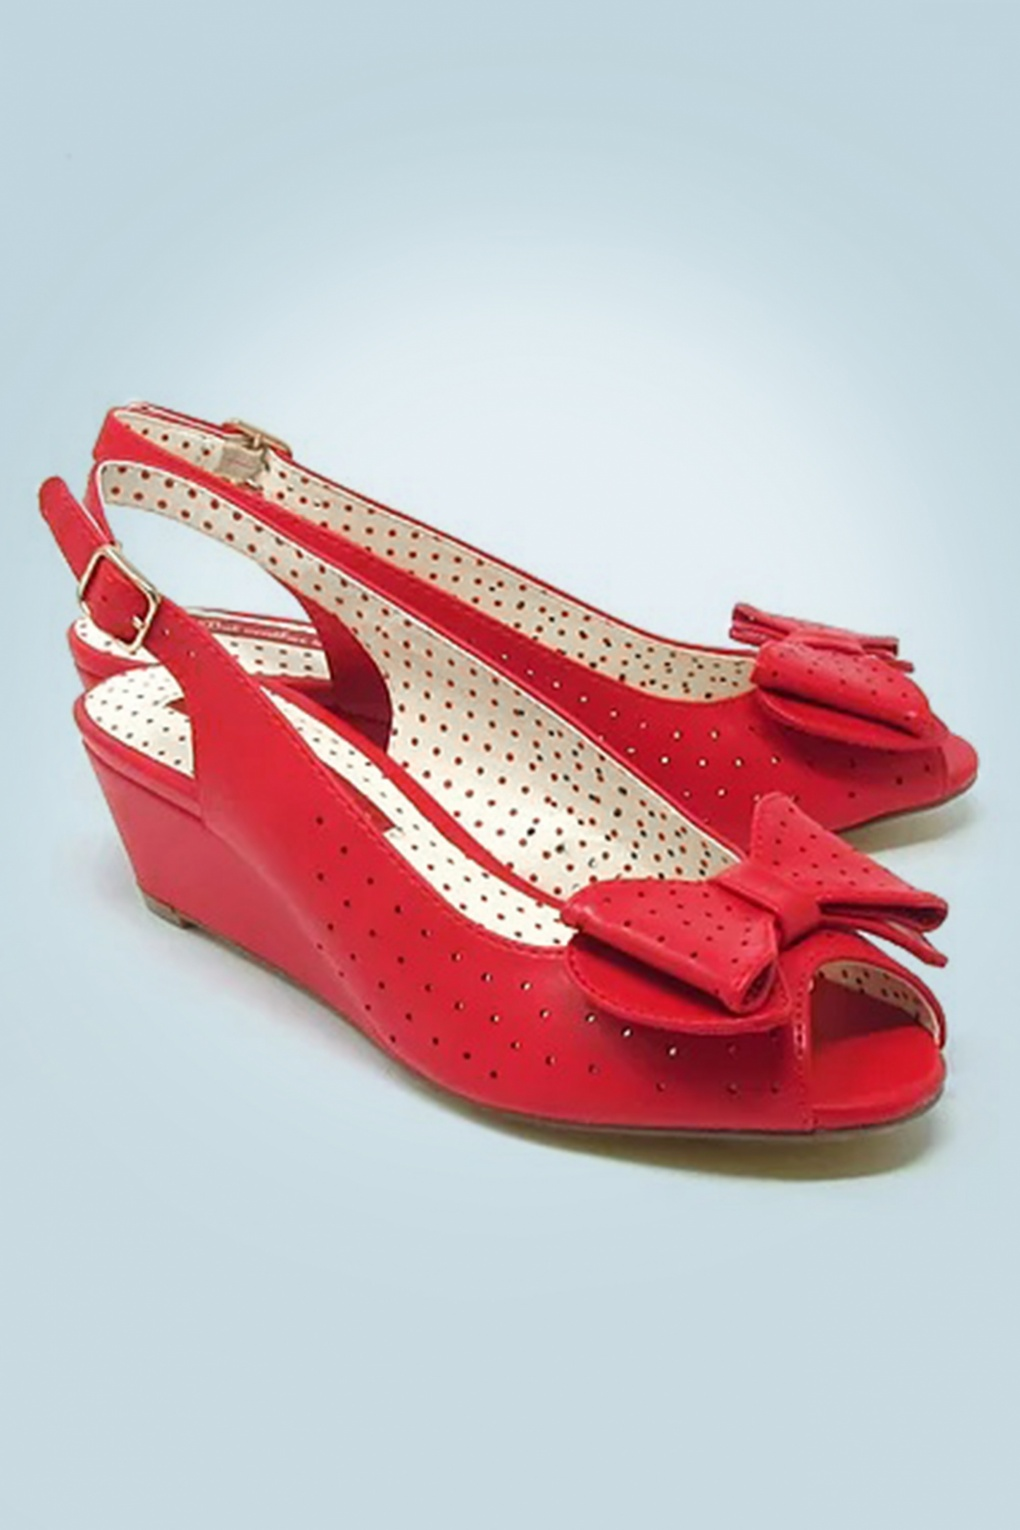 1950s Shoe Styles: Heels, Flats, Sandals, Saddles Shoes 50s Jasmine Wedge Peeptoes in Red �66.43 AT vintagedancer.com